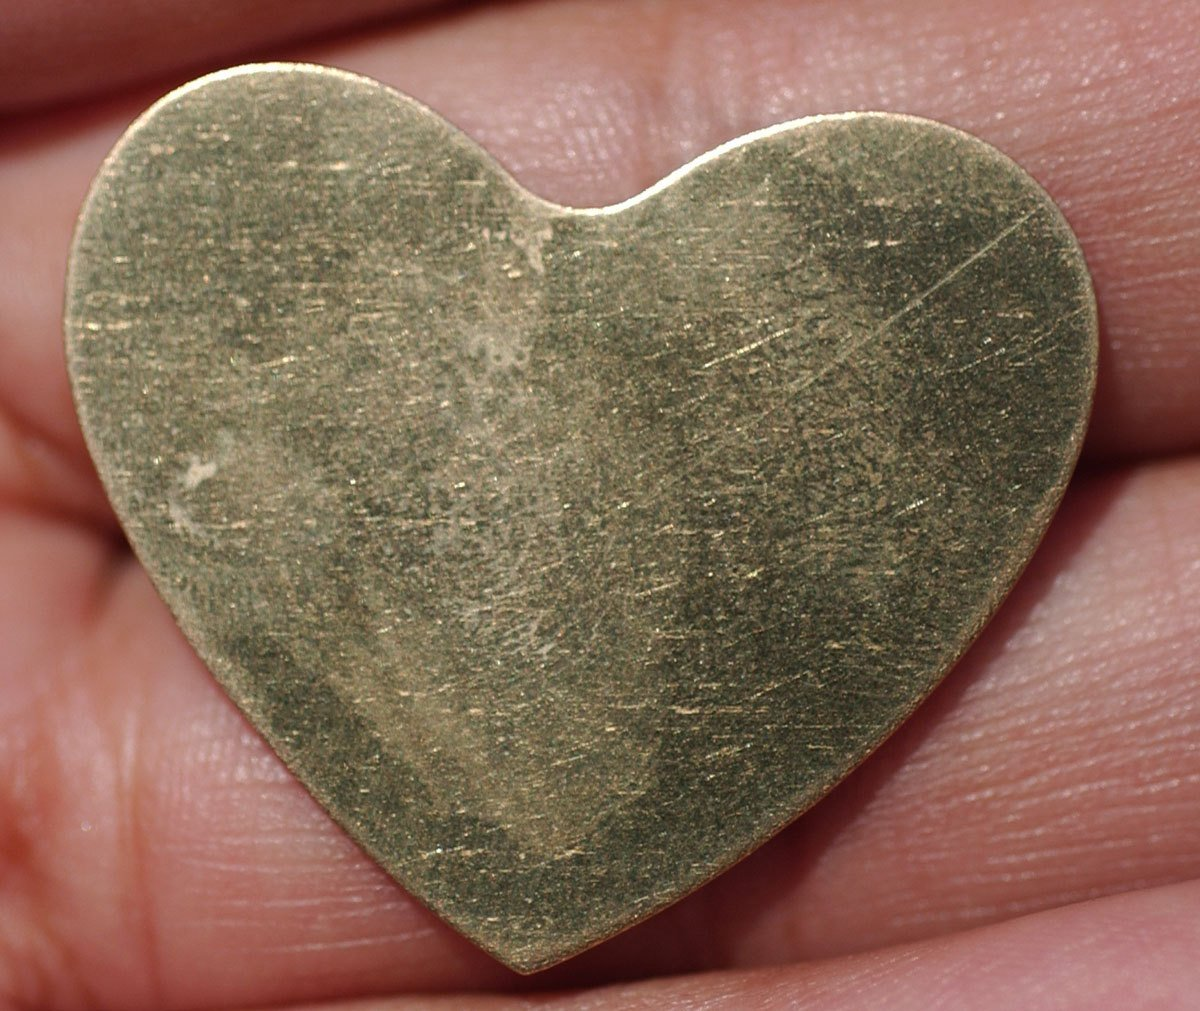 Brass Heart Classic 30mm x 33mm 24g Blanks Shape Cutout for Enameling Stamping Texturing